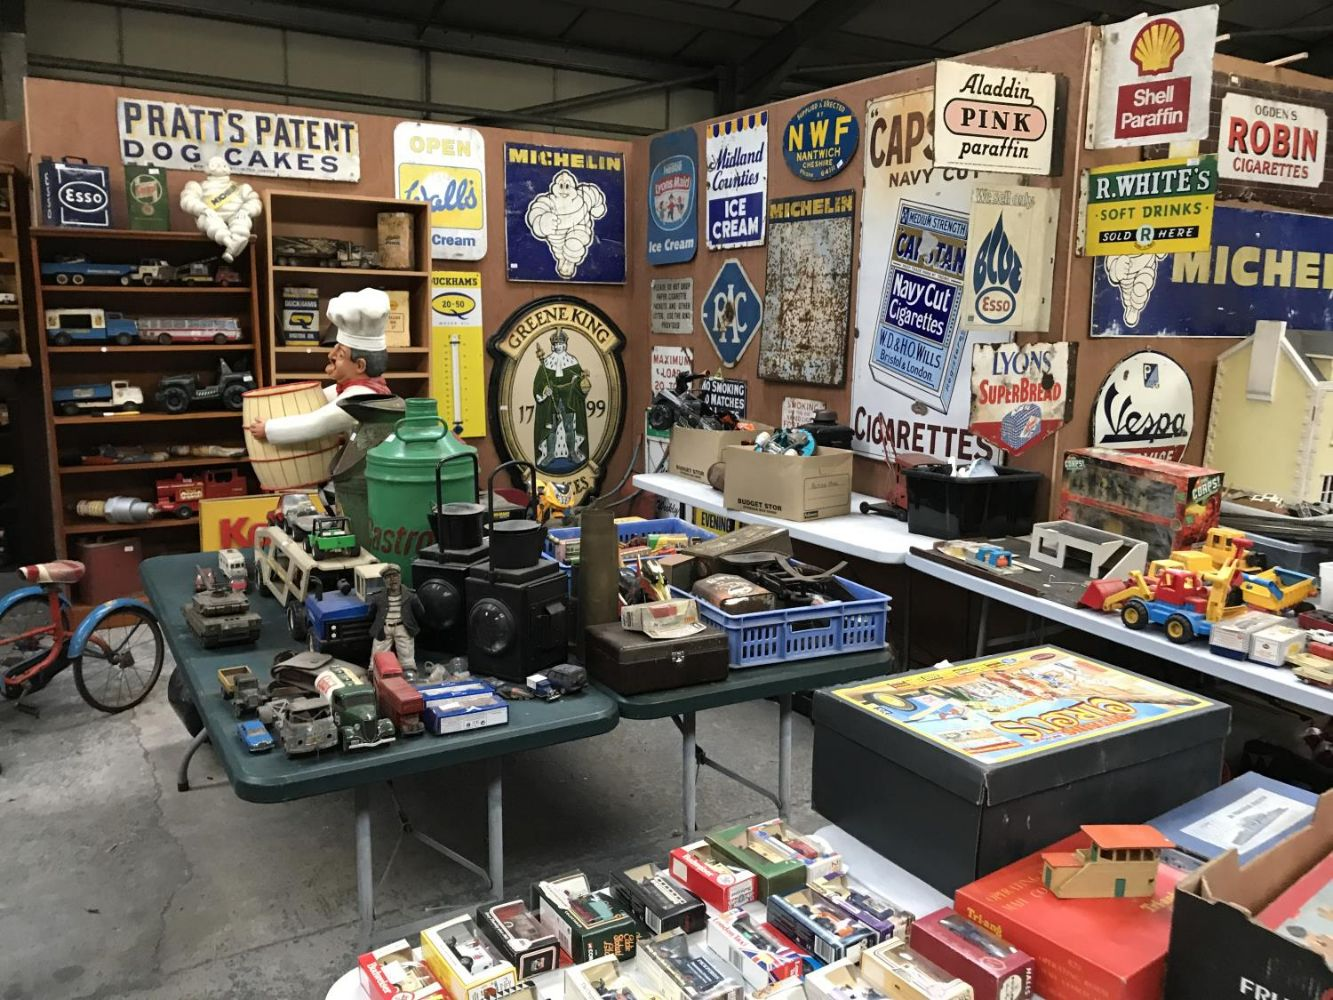 Two Day Auction Of Collectables, Antiques, Furniture, Vintage Items - with a special section for Coins and Stamps